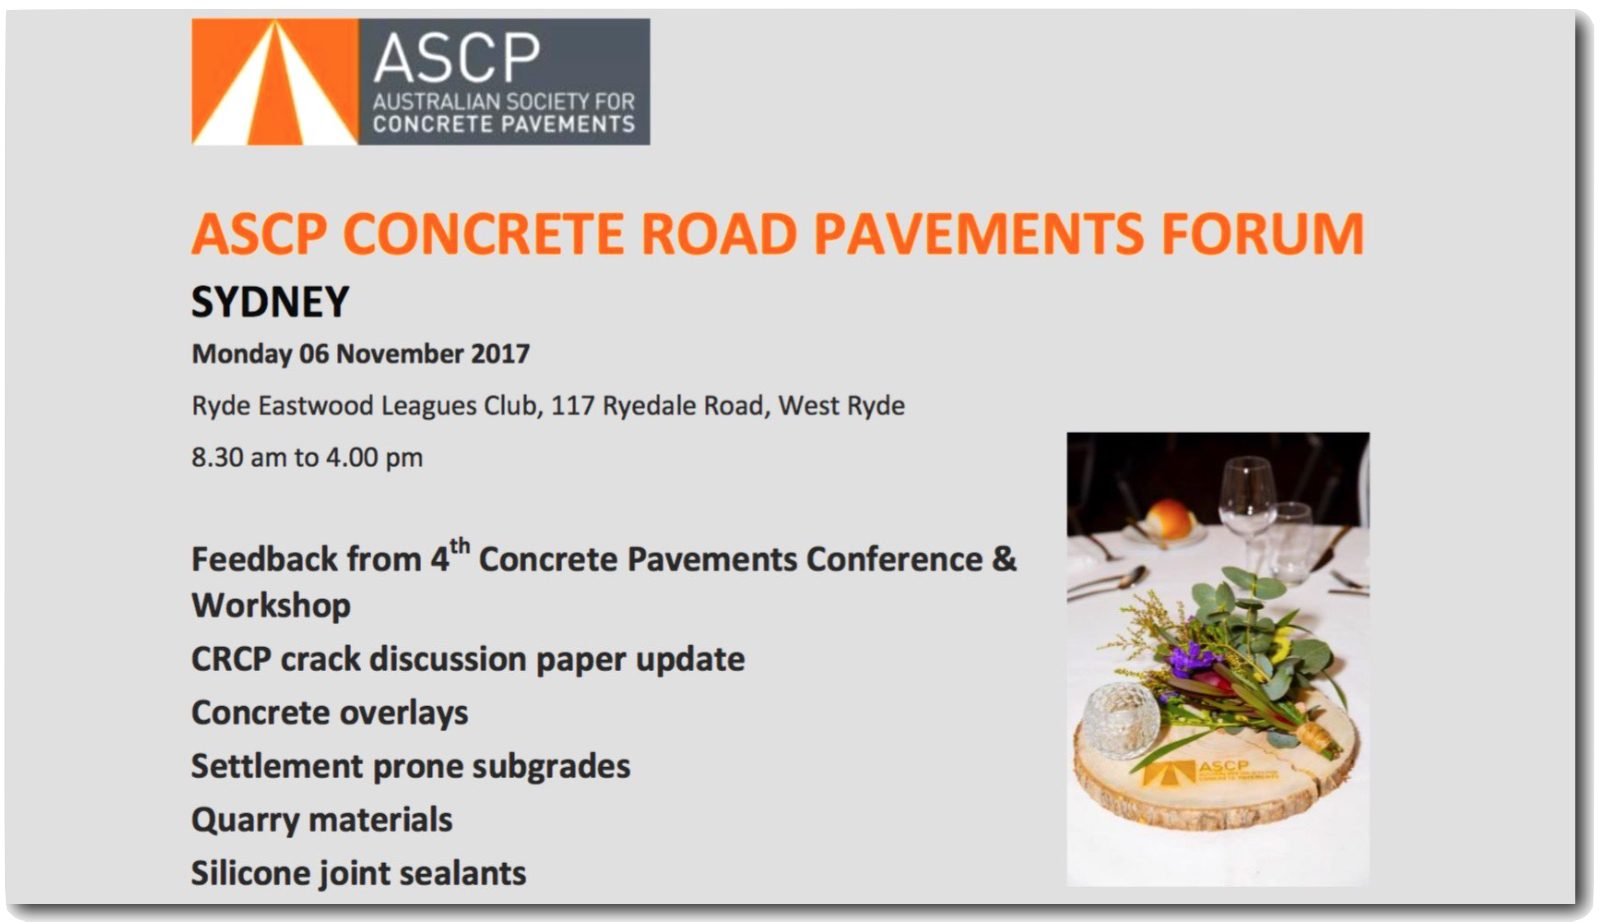 ASCP to Hold Concrete Road Pavements Forum in November, Sydney, Australia